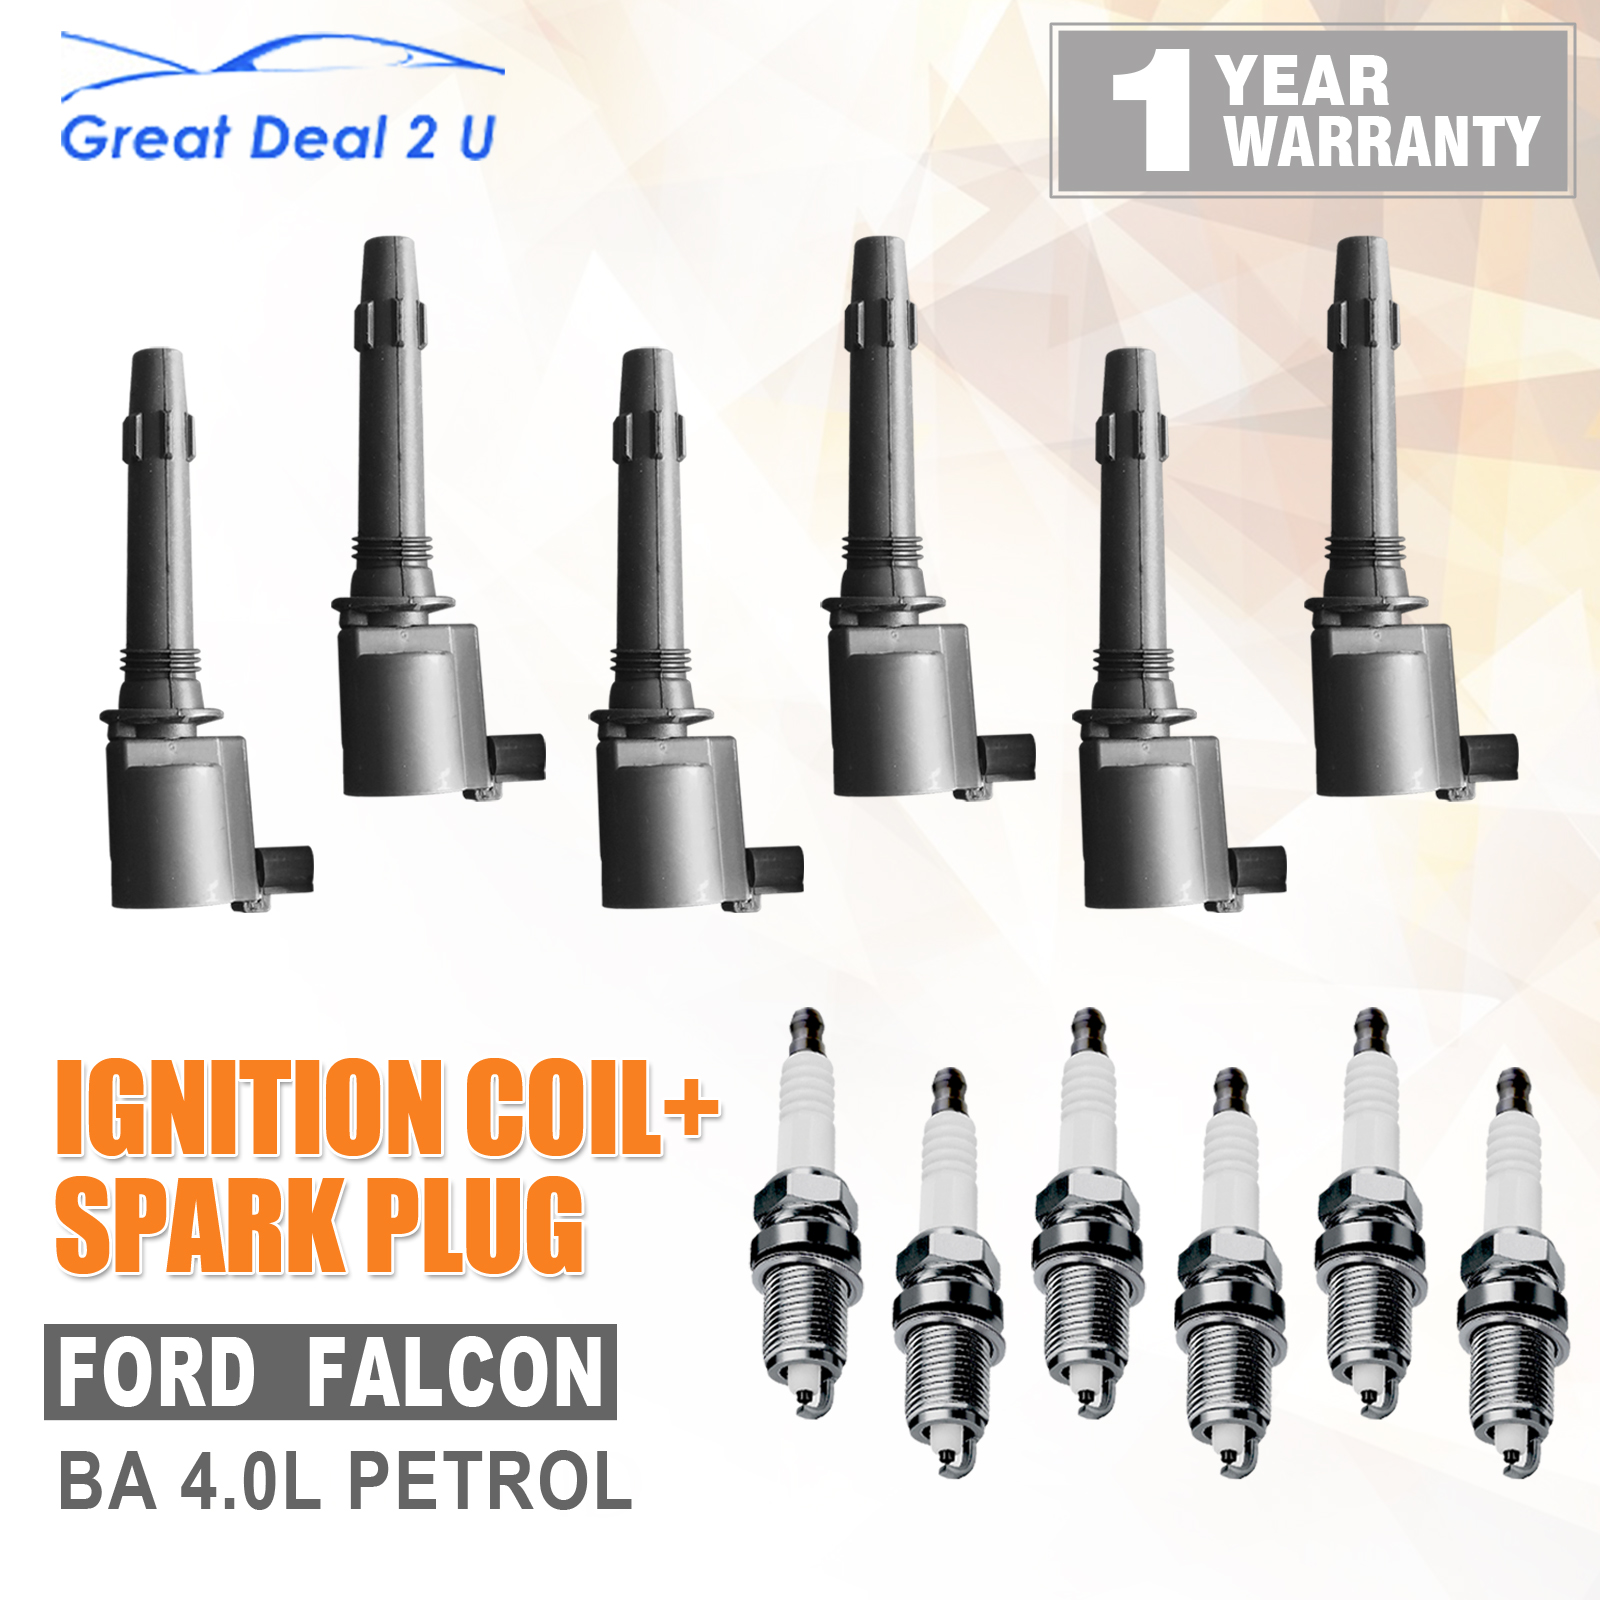 300zx Non Turbo Spark Plugs: Ford BA Falcon & XR6 Ignition Coil Packs +Spark Plugs 1